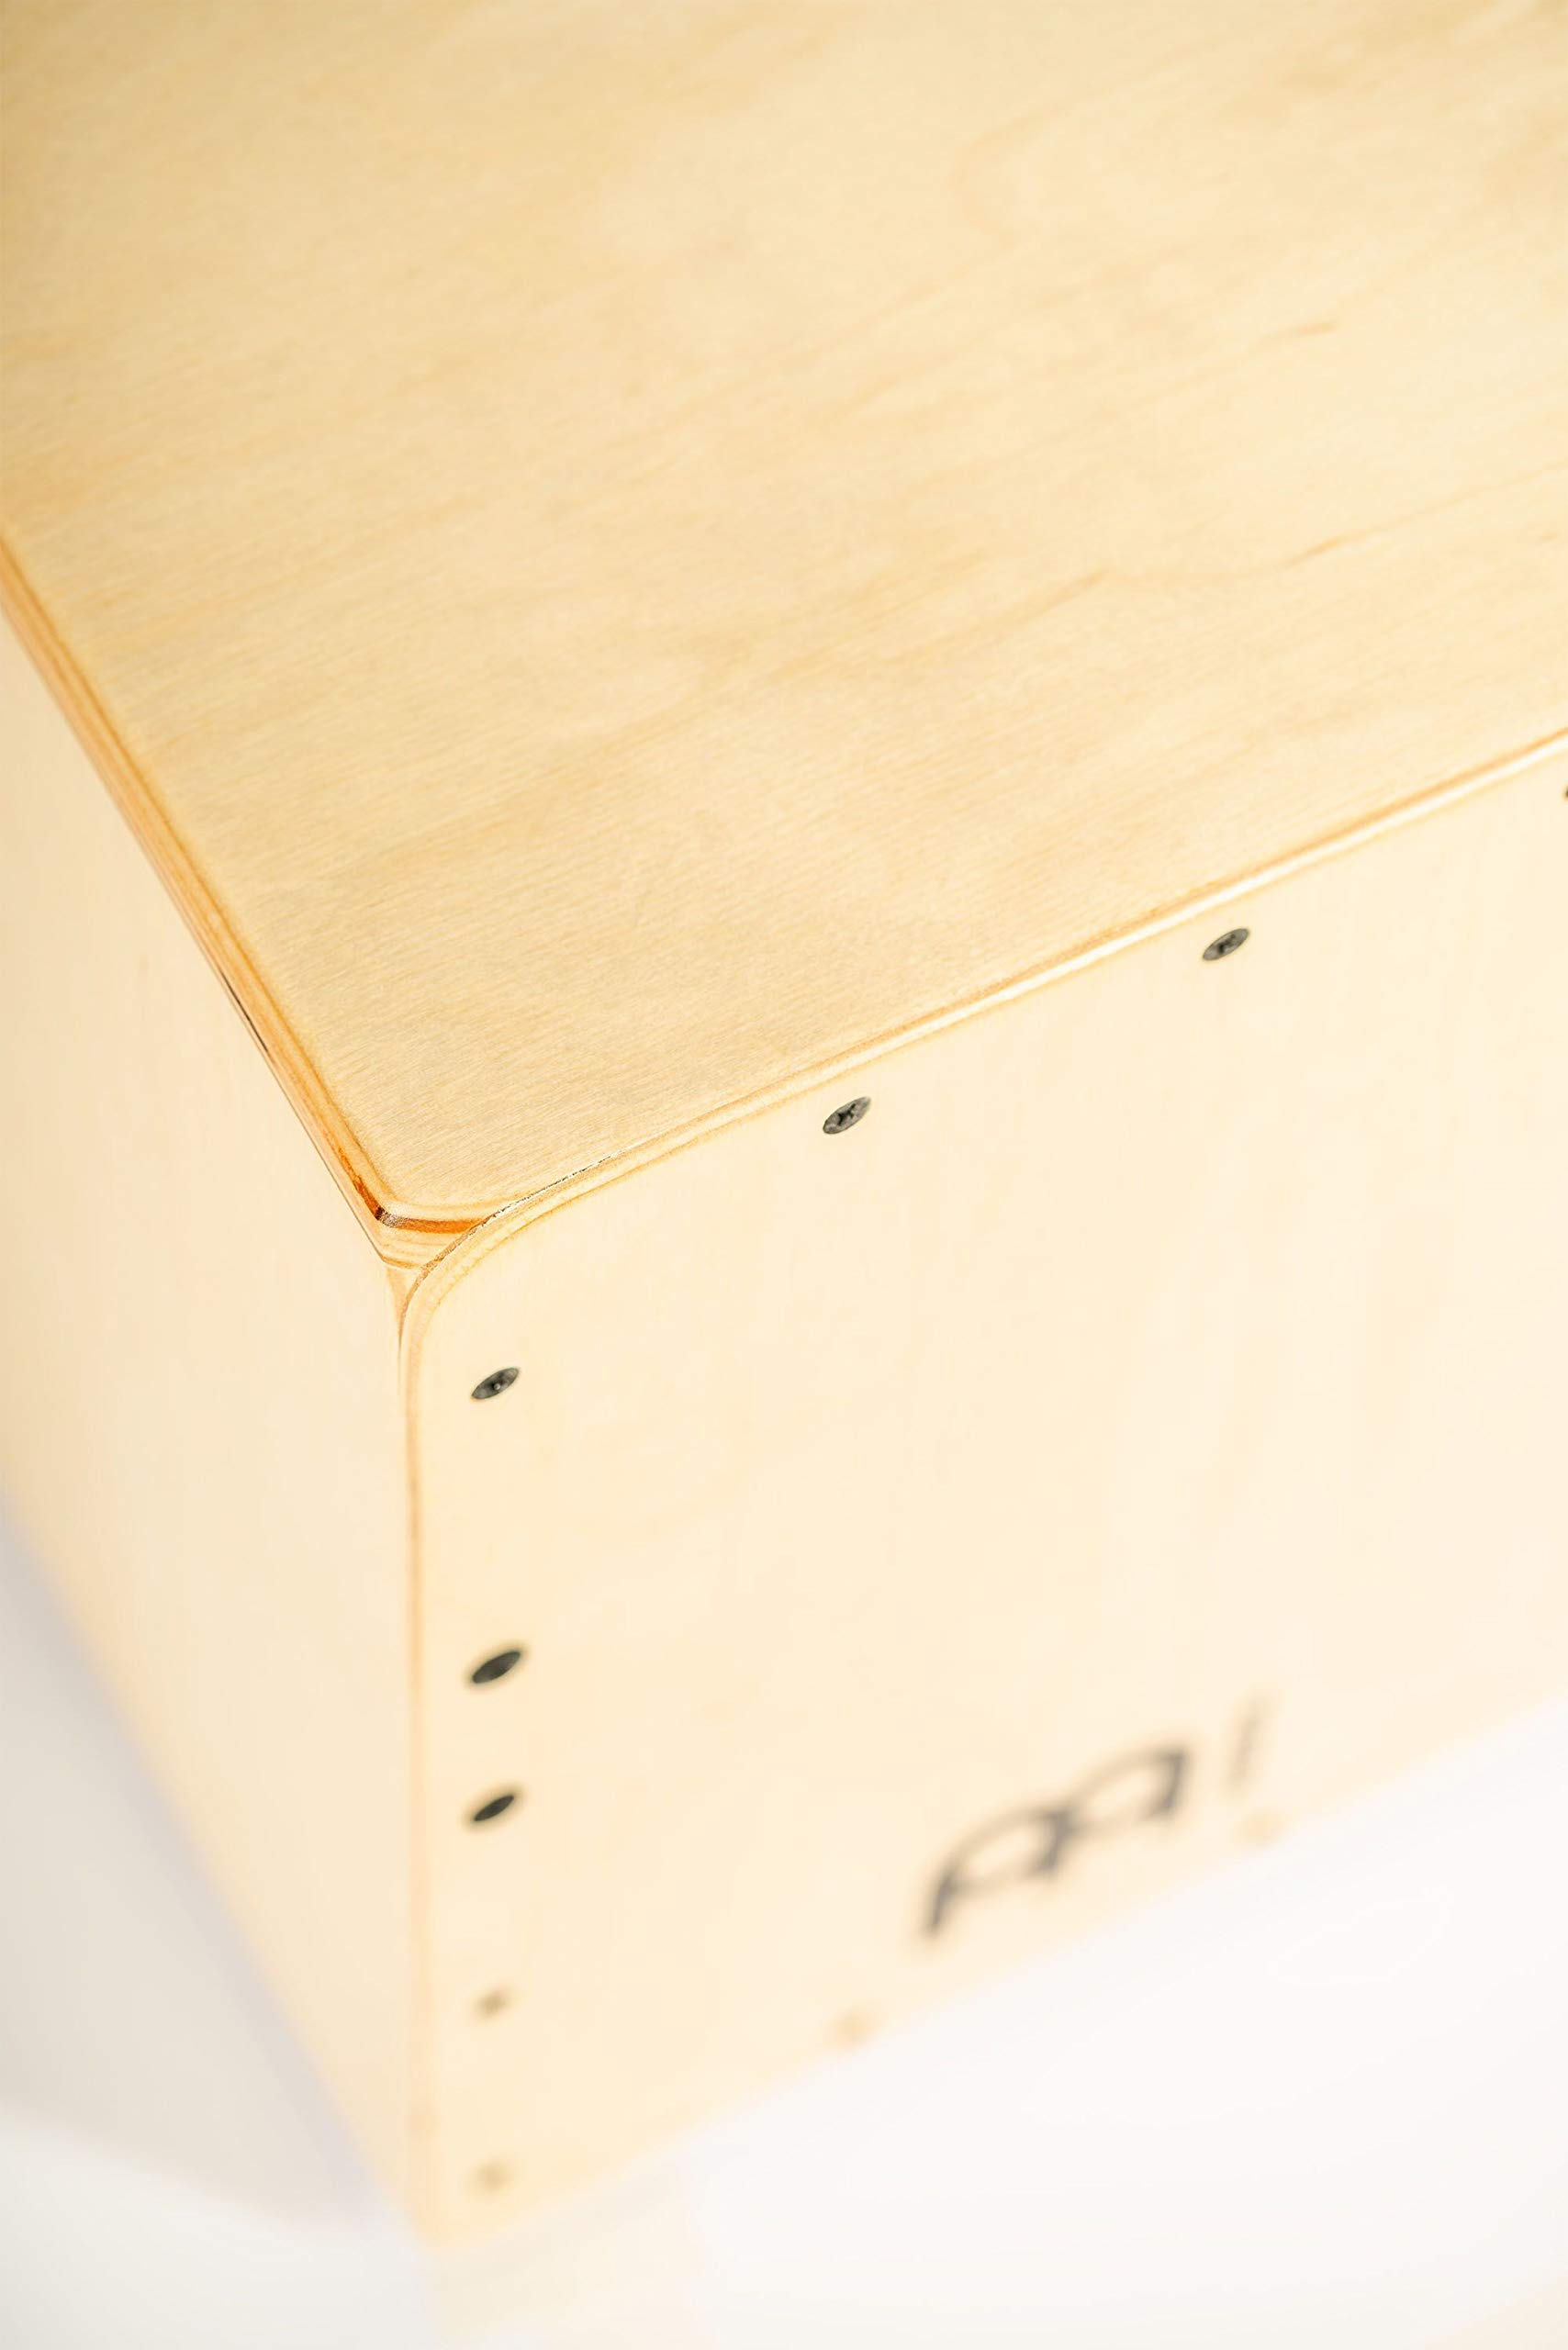 Meinl Cajon Box Drum with Internal Snares - MADE IN EUROPE - Baltic Birch Wood, Compact Size, 2-YEAR WARRANTY (JC50B) by Meinl Percussion (Image #4)